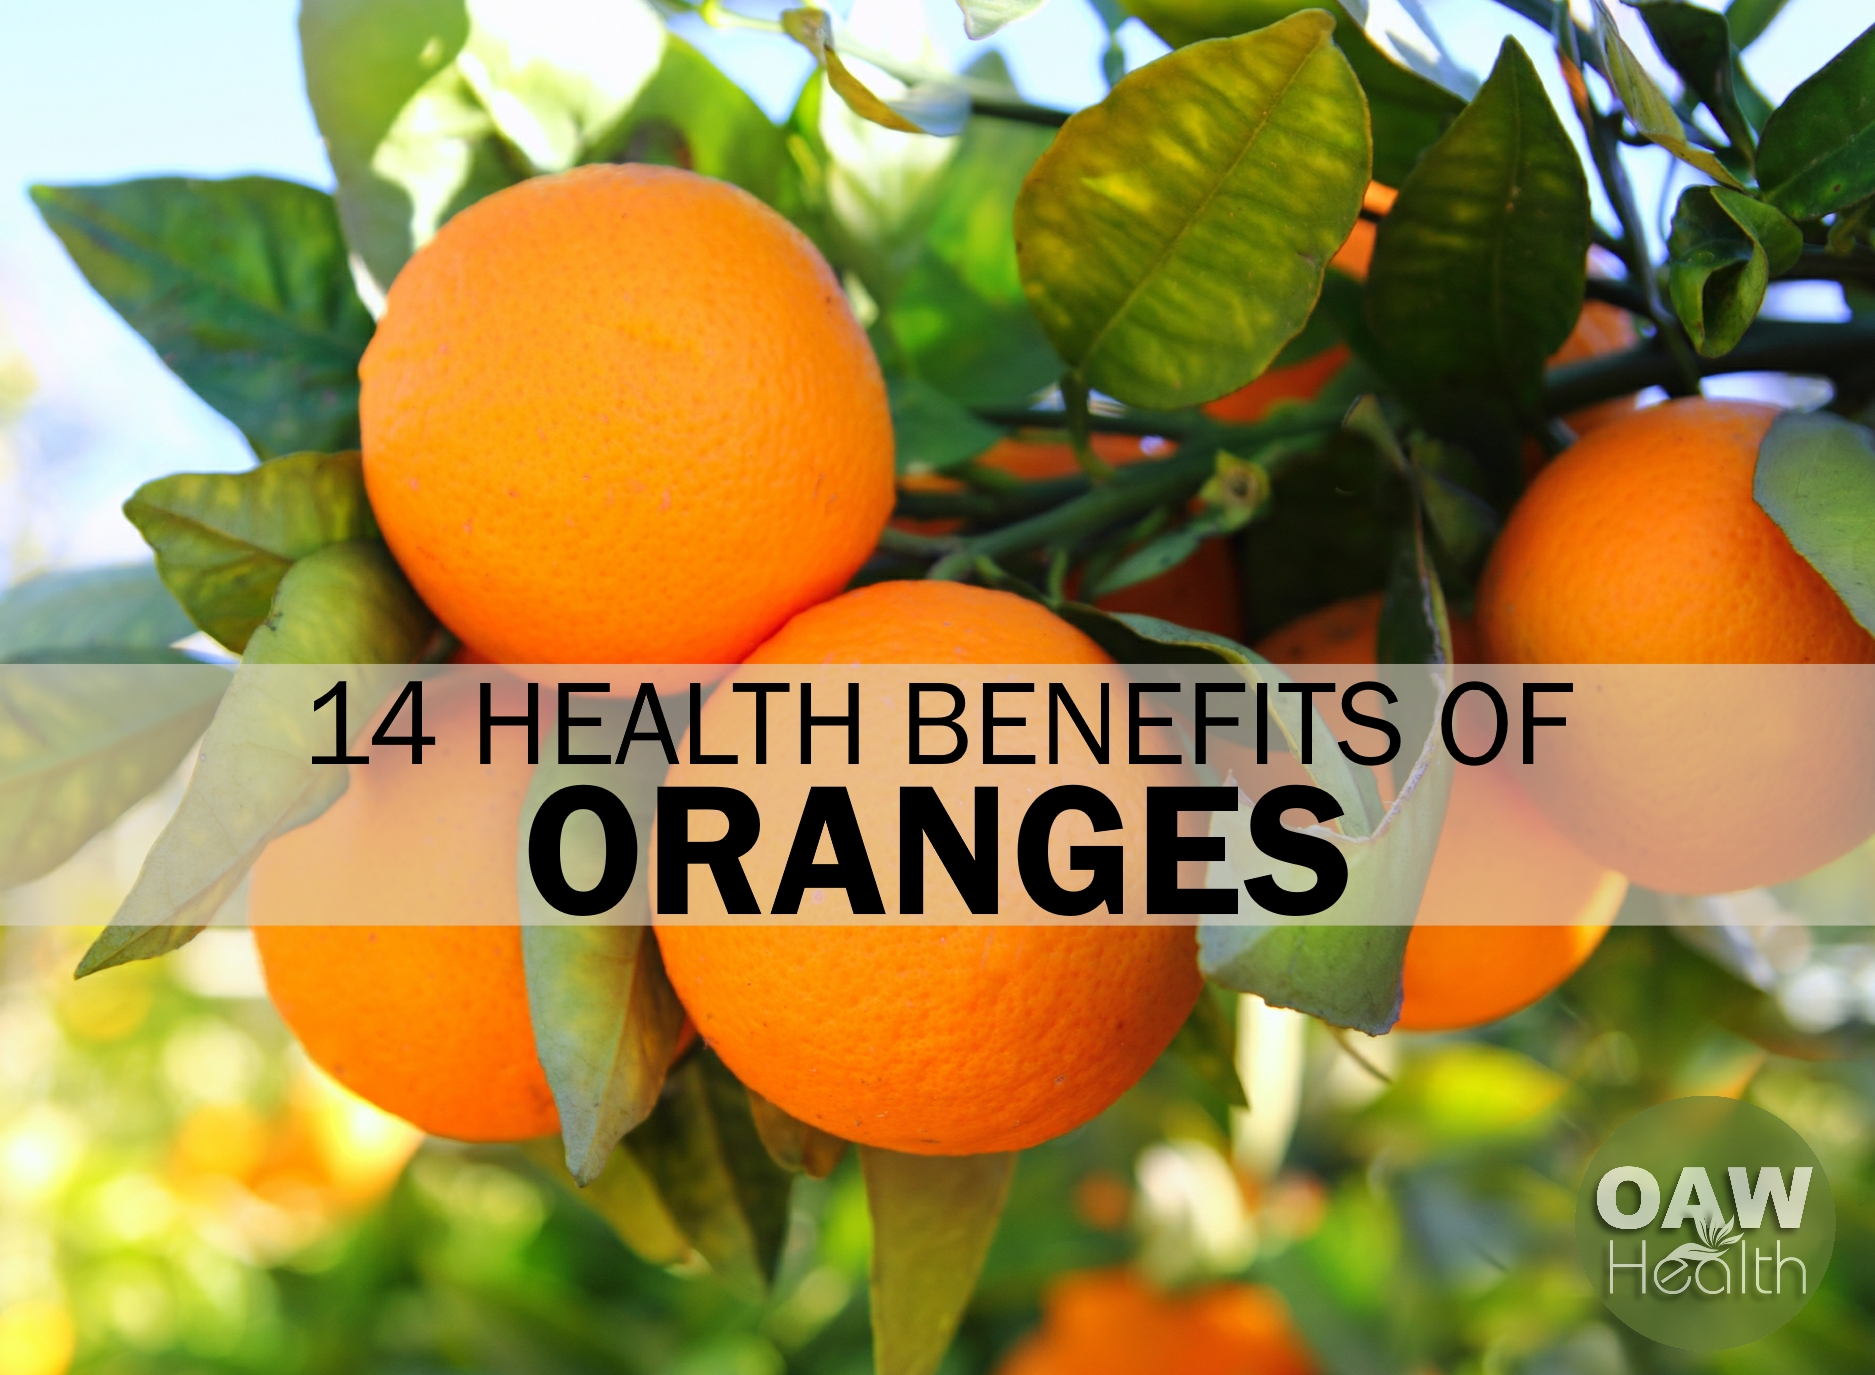 14 Health Benefits of Oranges